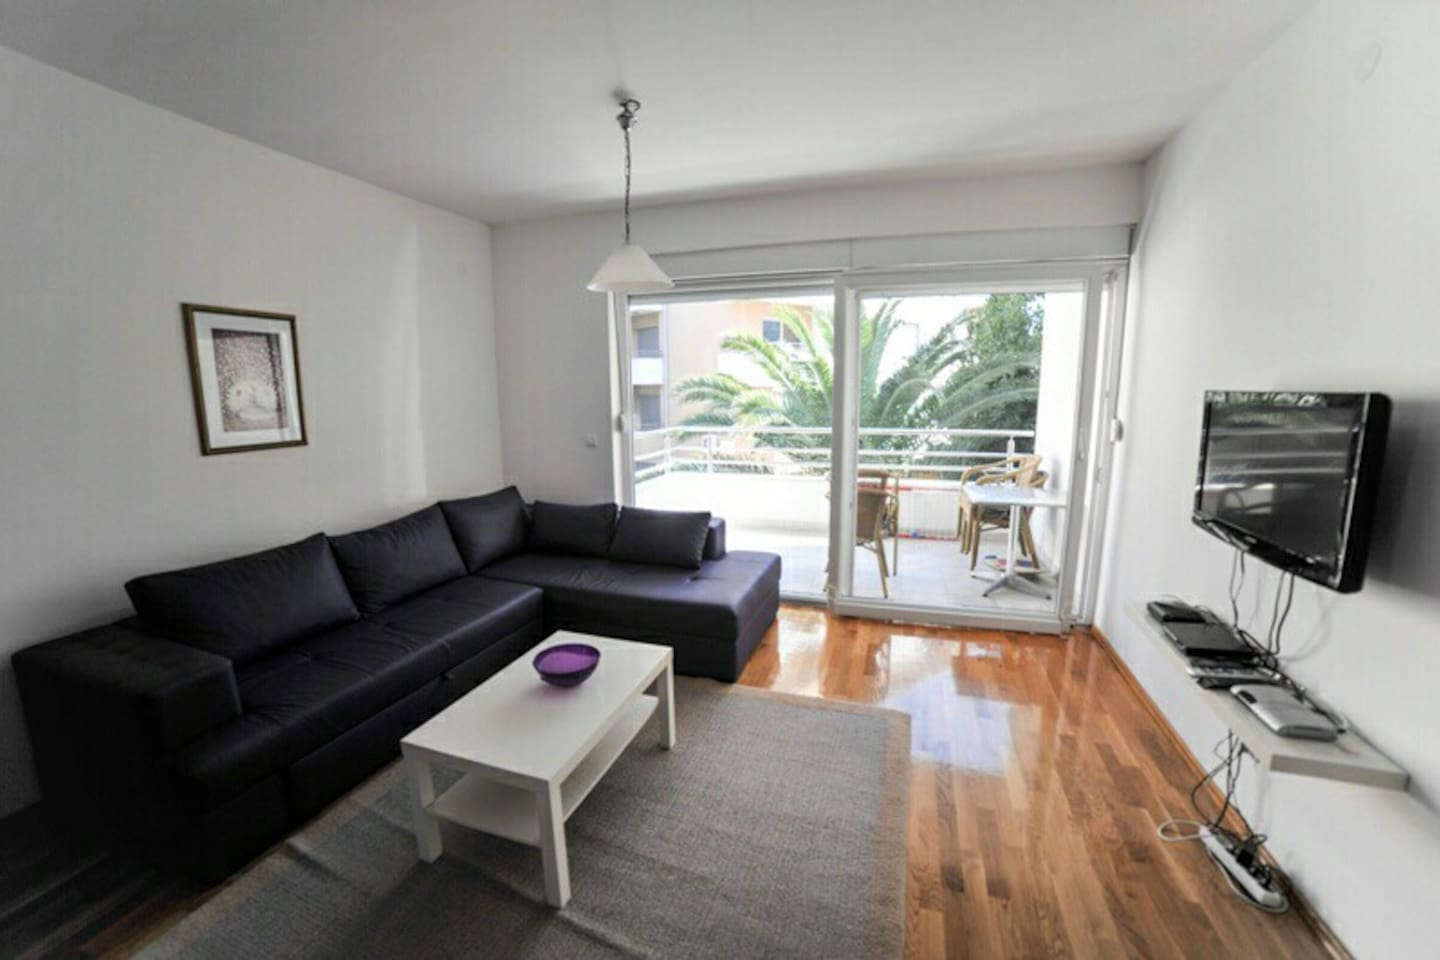 Modern furnishing and a private terrace in the heart of the city